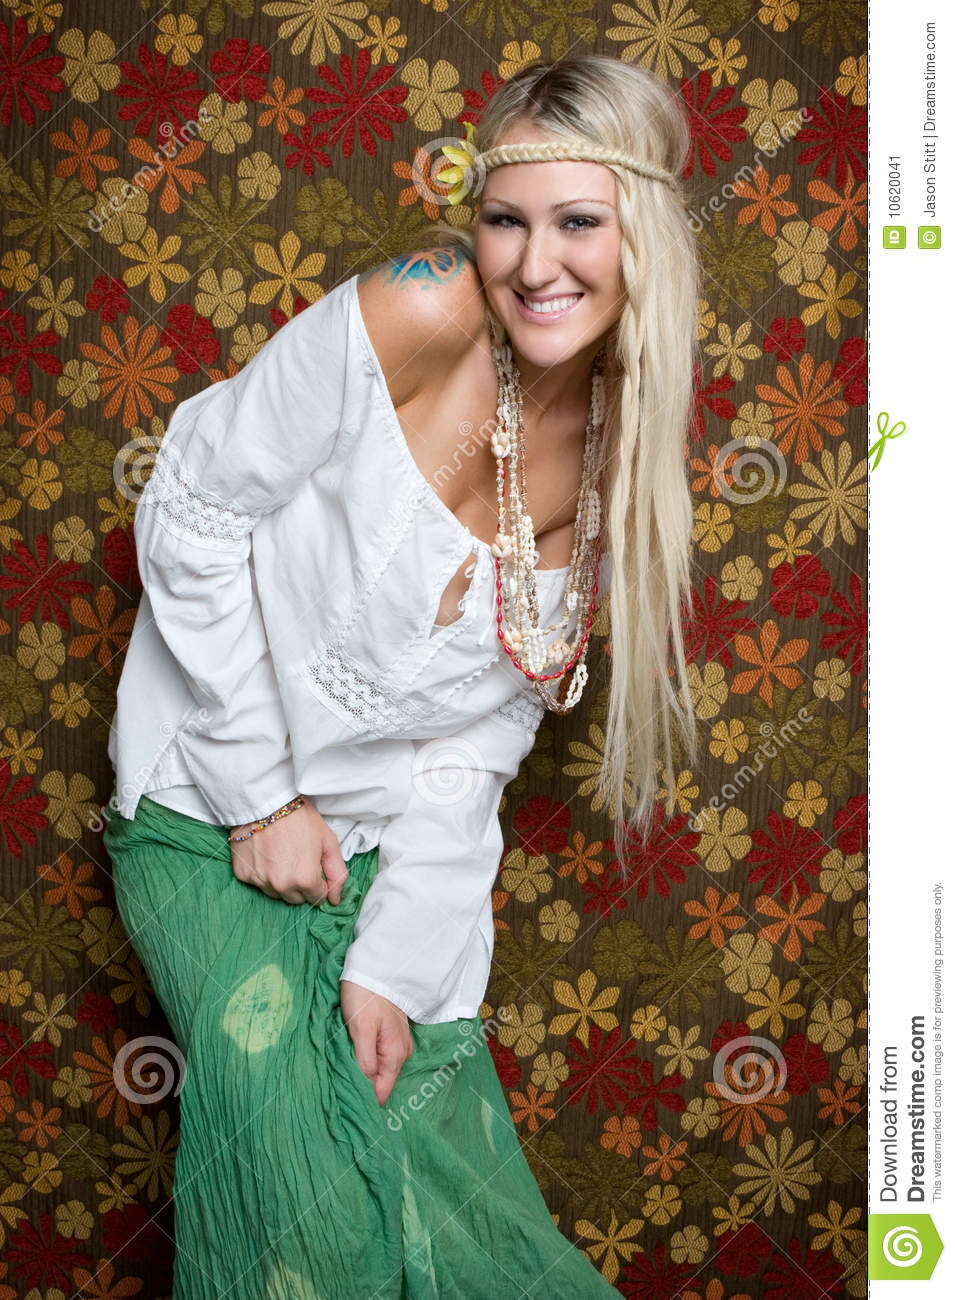 Young Girls Wallpaper Hippie Woman Stock Image Image Of Laughter Background